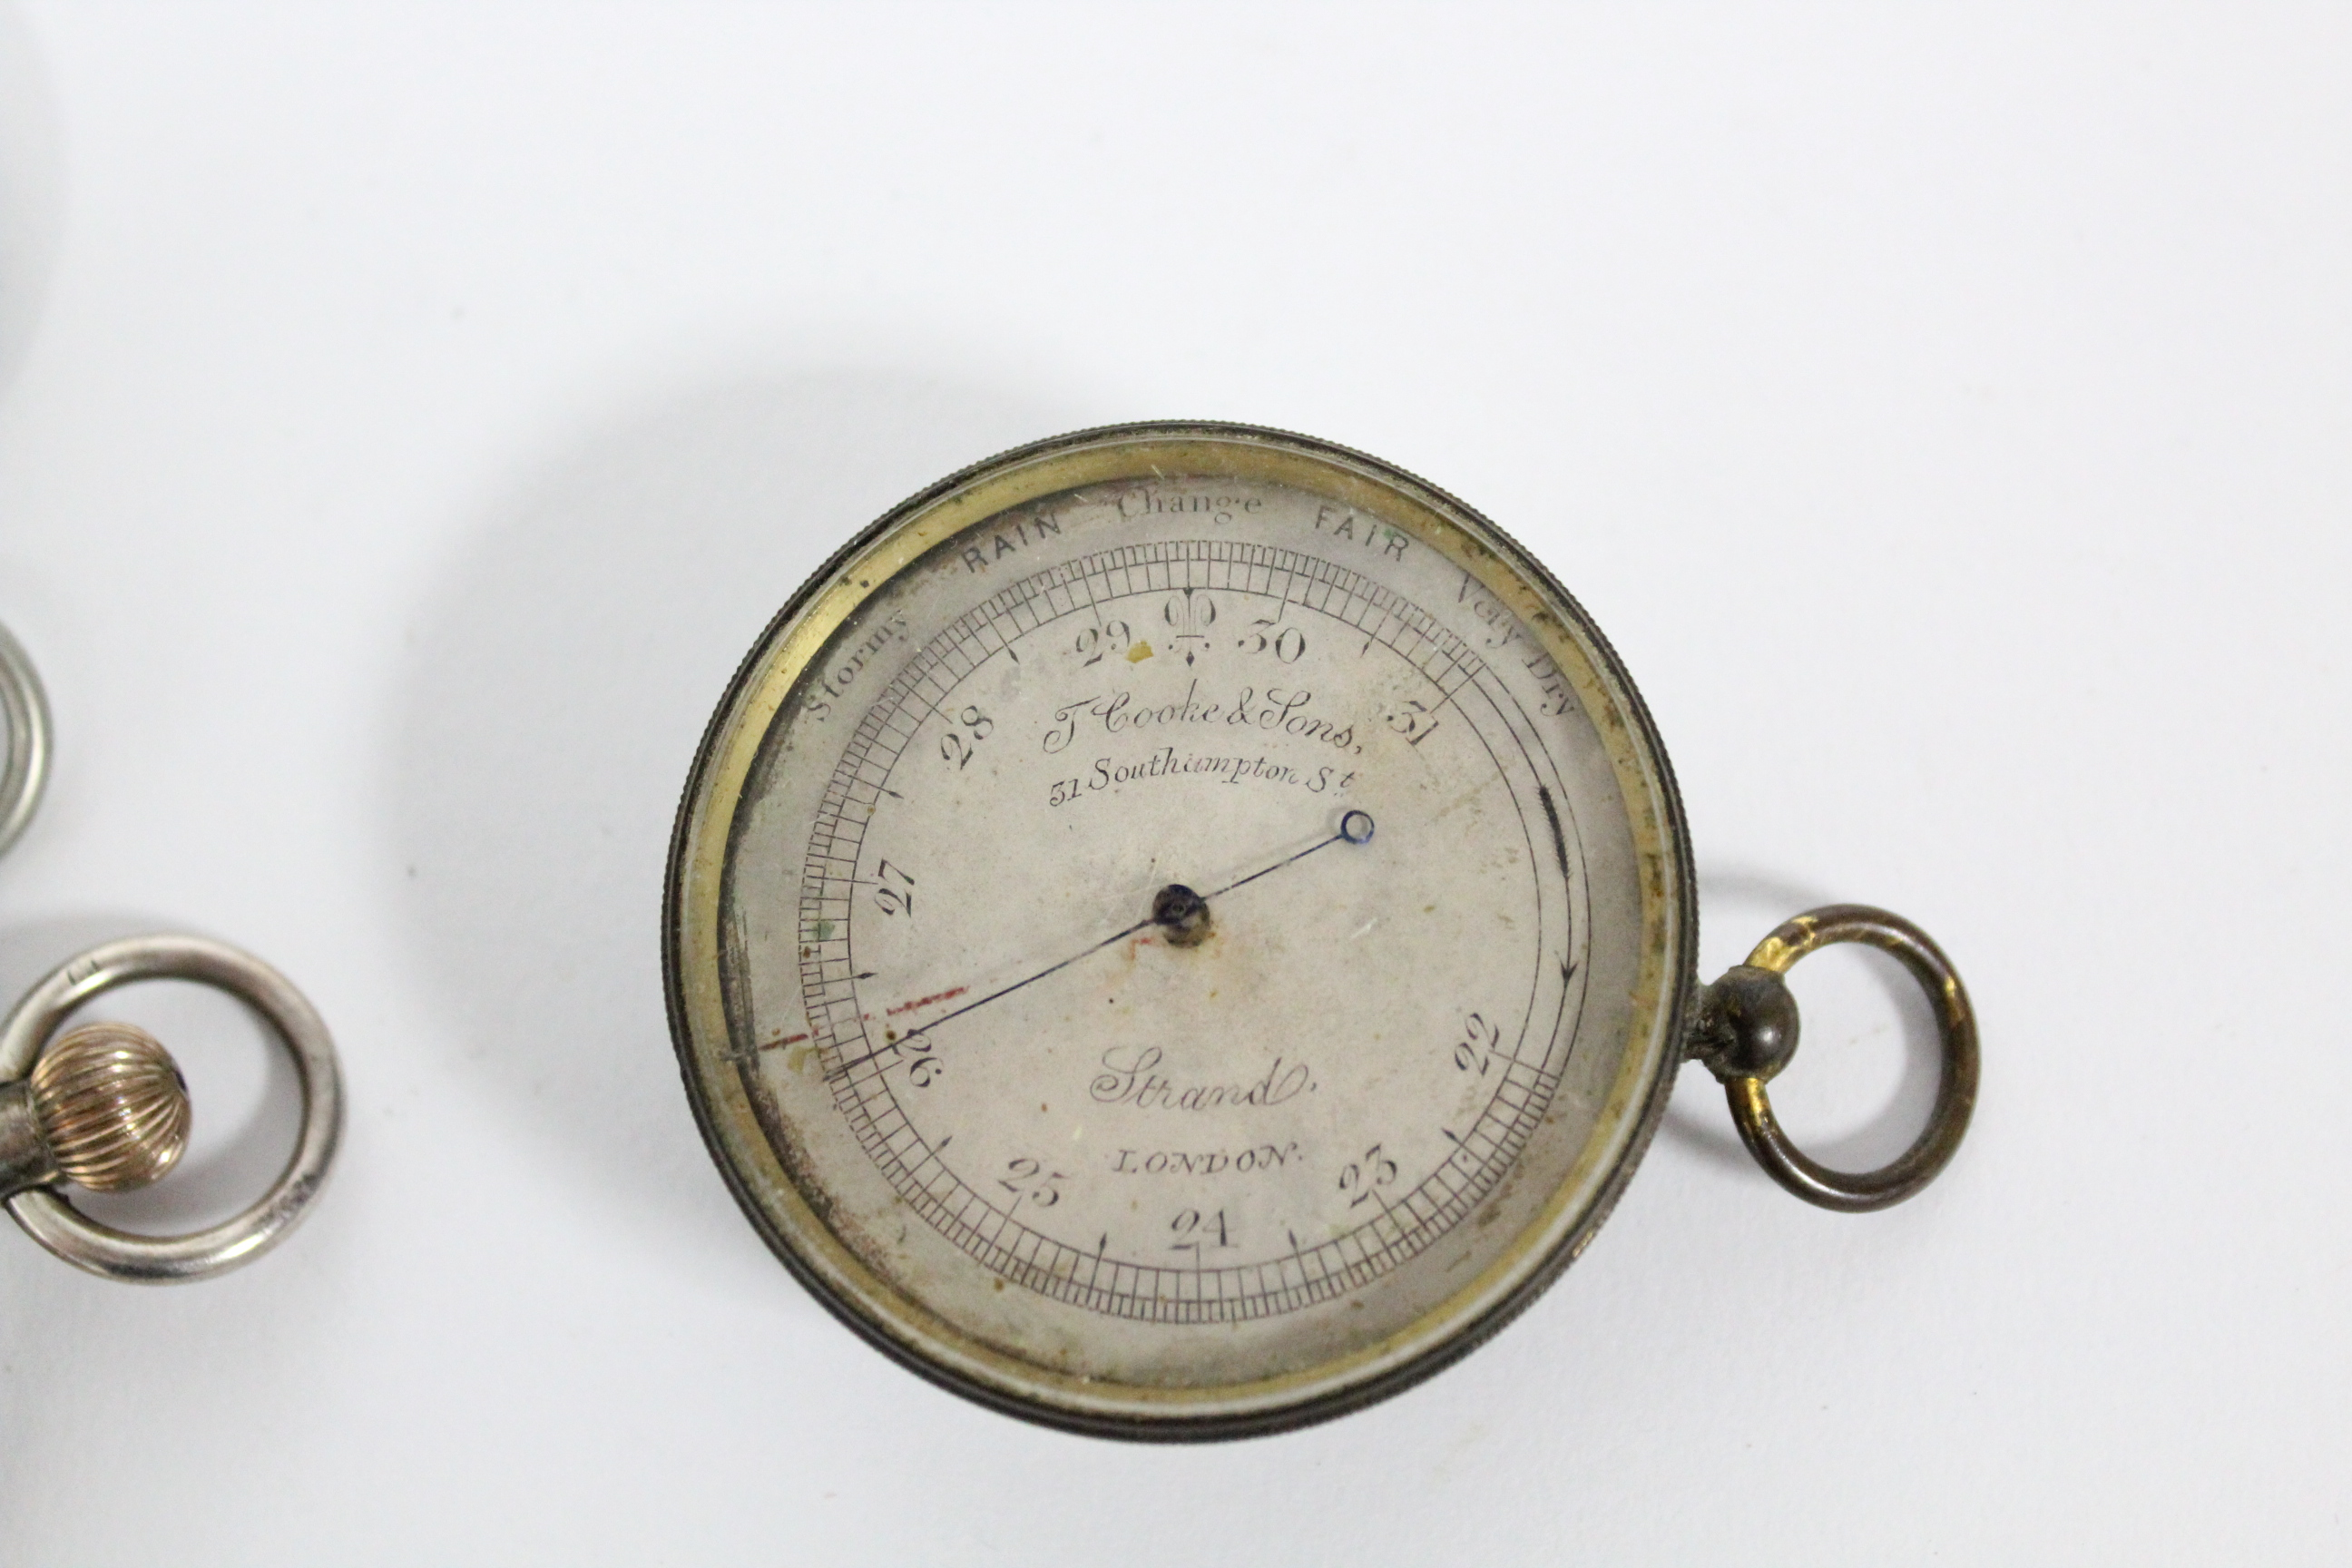 Lot 49 - An Edwardian silver cased gent's open-face pocket watch, the white enamel dial with black roman